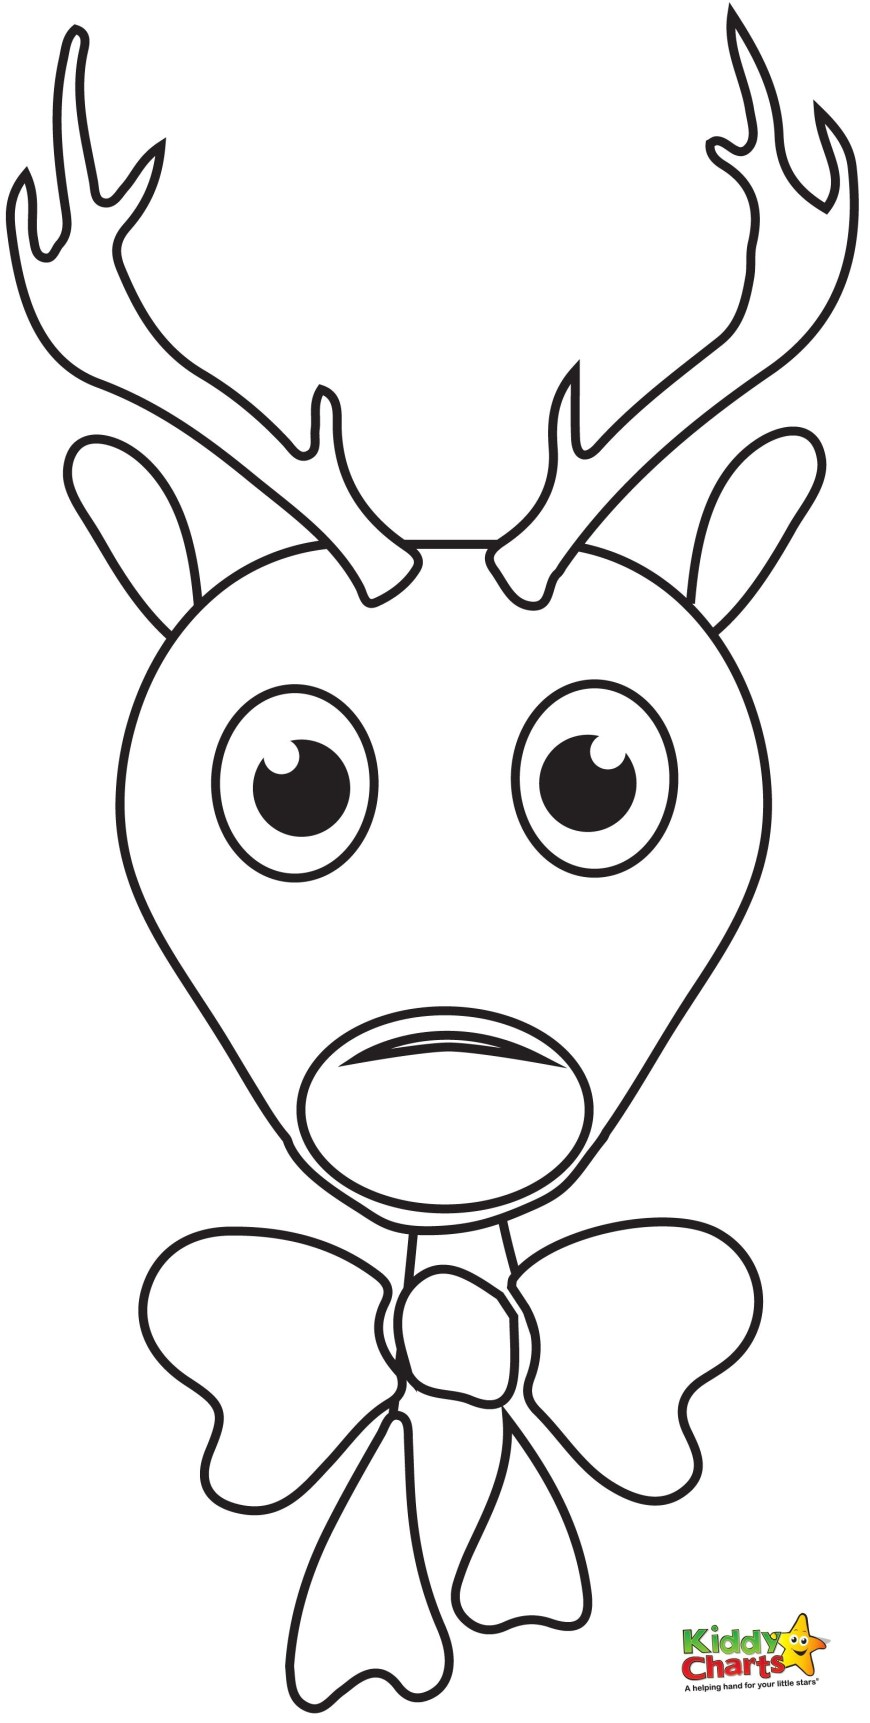 Rudolph The Red Nosed Reindeer Coloring Pages Rudolph Red Nosed Reindeer Coloring Pages Gallery Of The Page